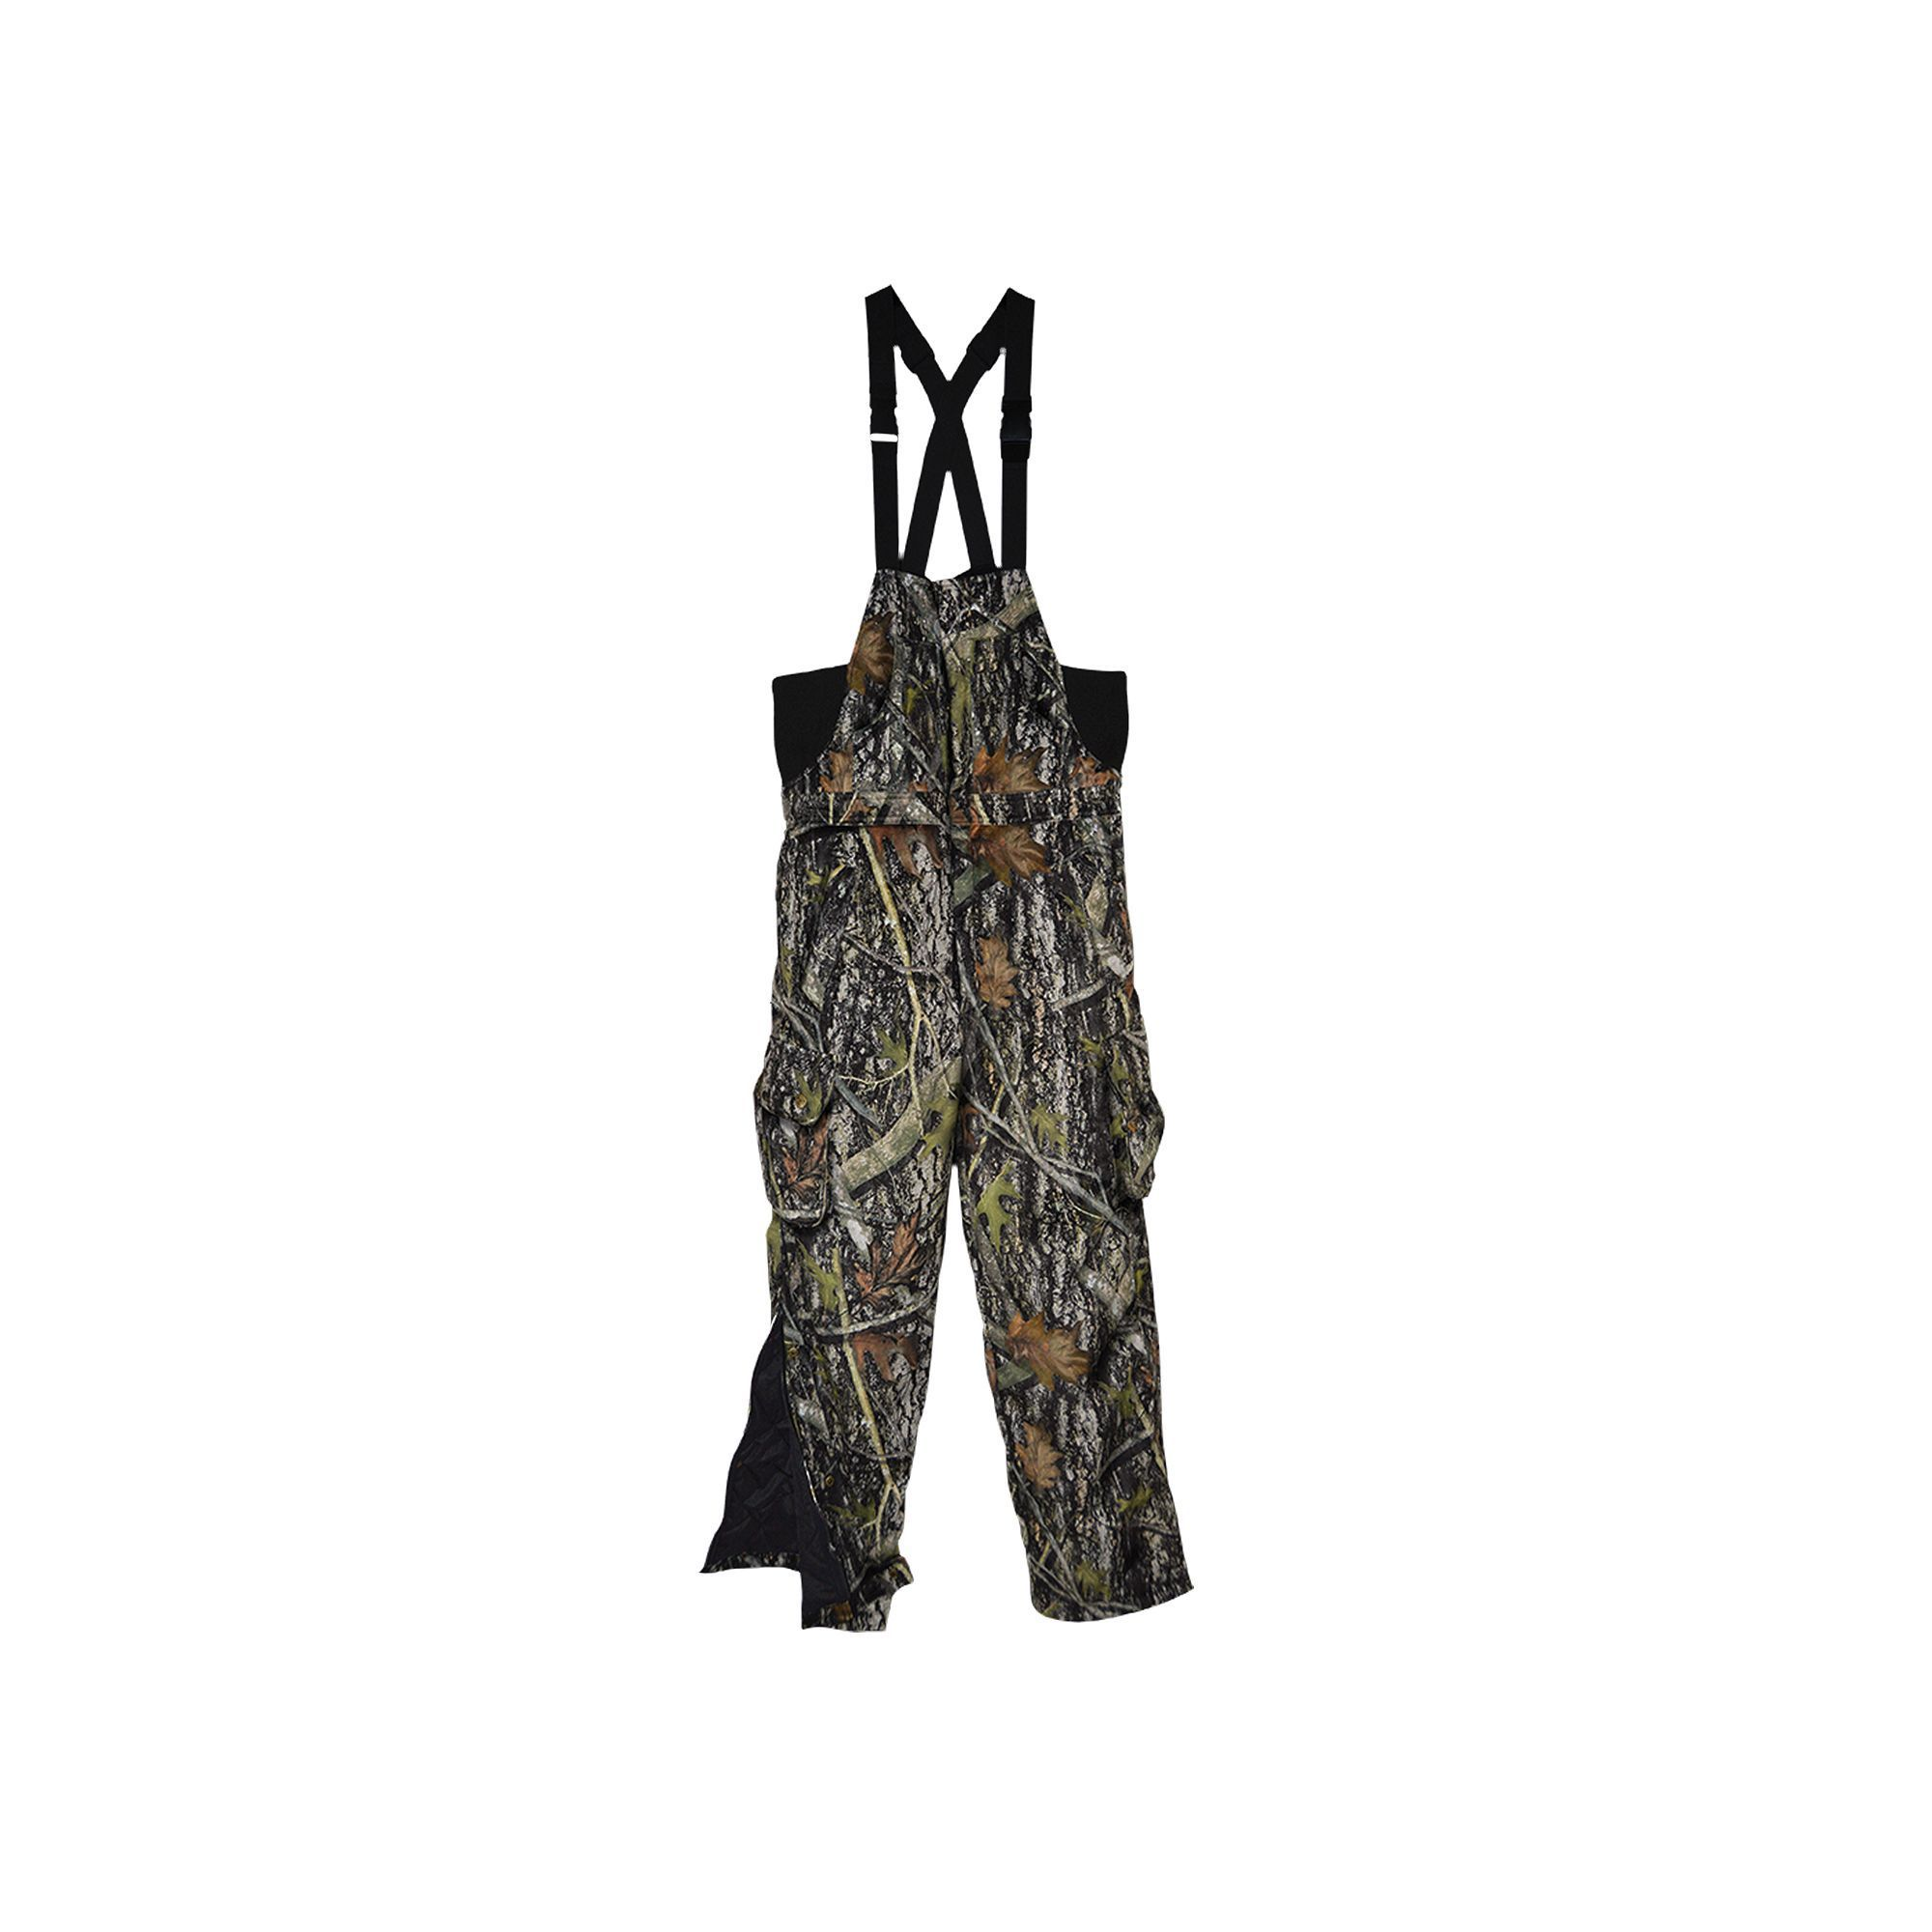 37b95046392b5 Men's True Timber Camo Insulated Hunting Bib Overalls, Size: XL, Grey  (Charcoal)